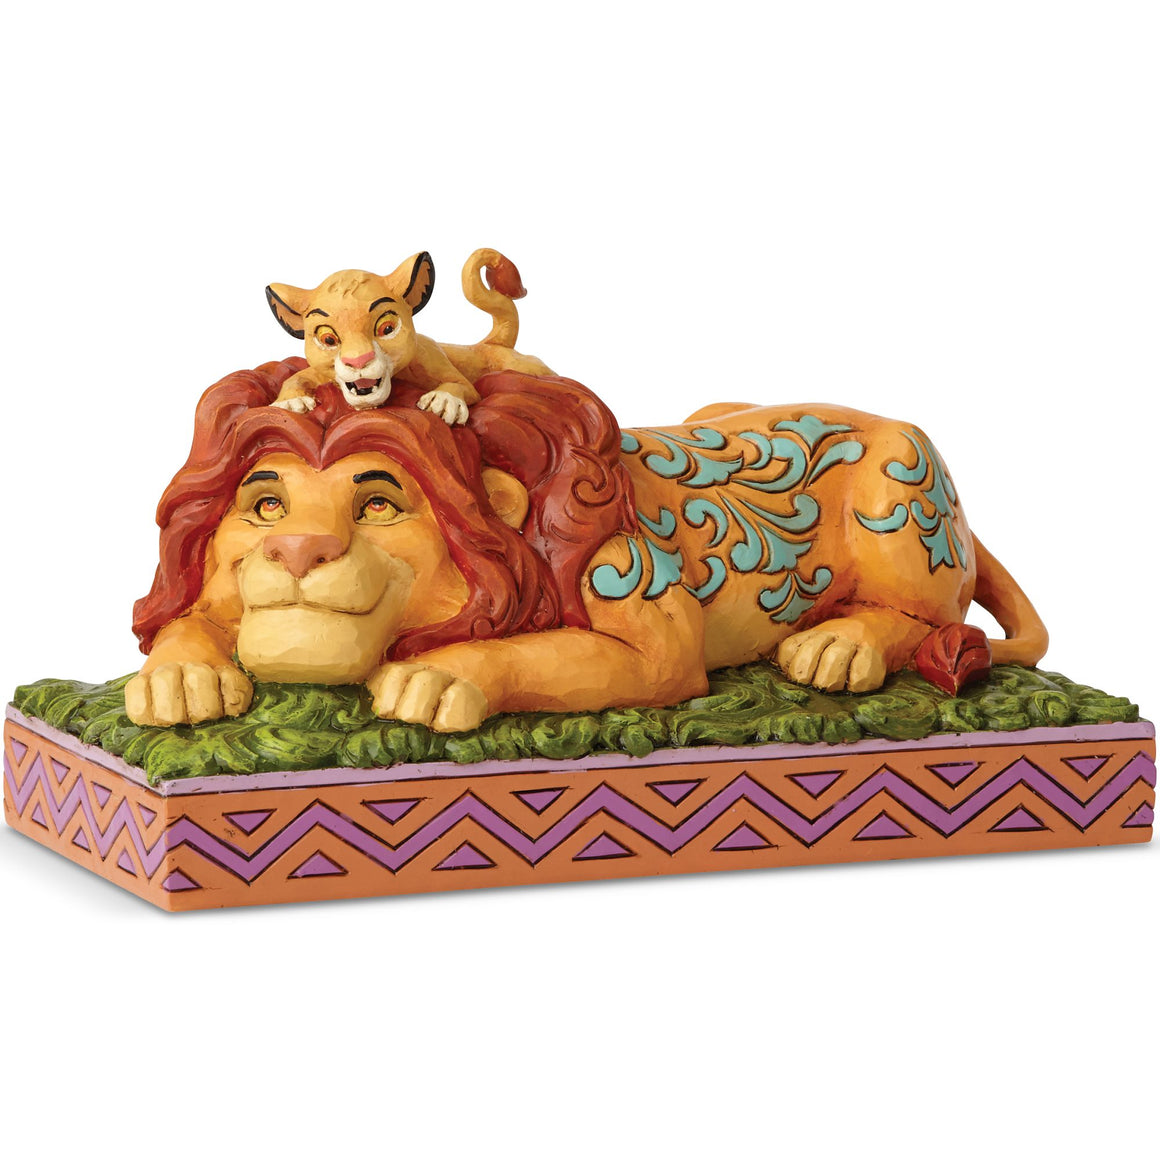 Disney Traditions A Father's Pride (Simba & Mufasa Figurine)